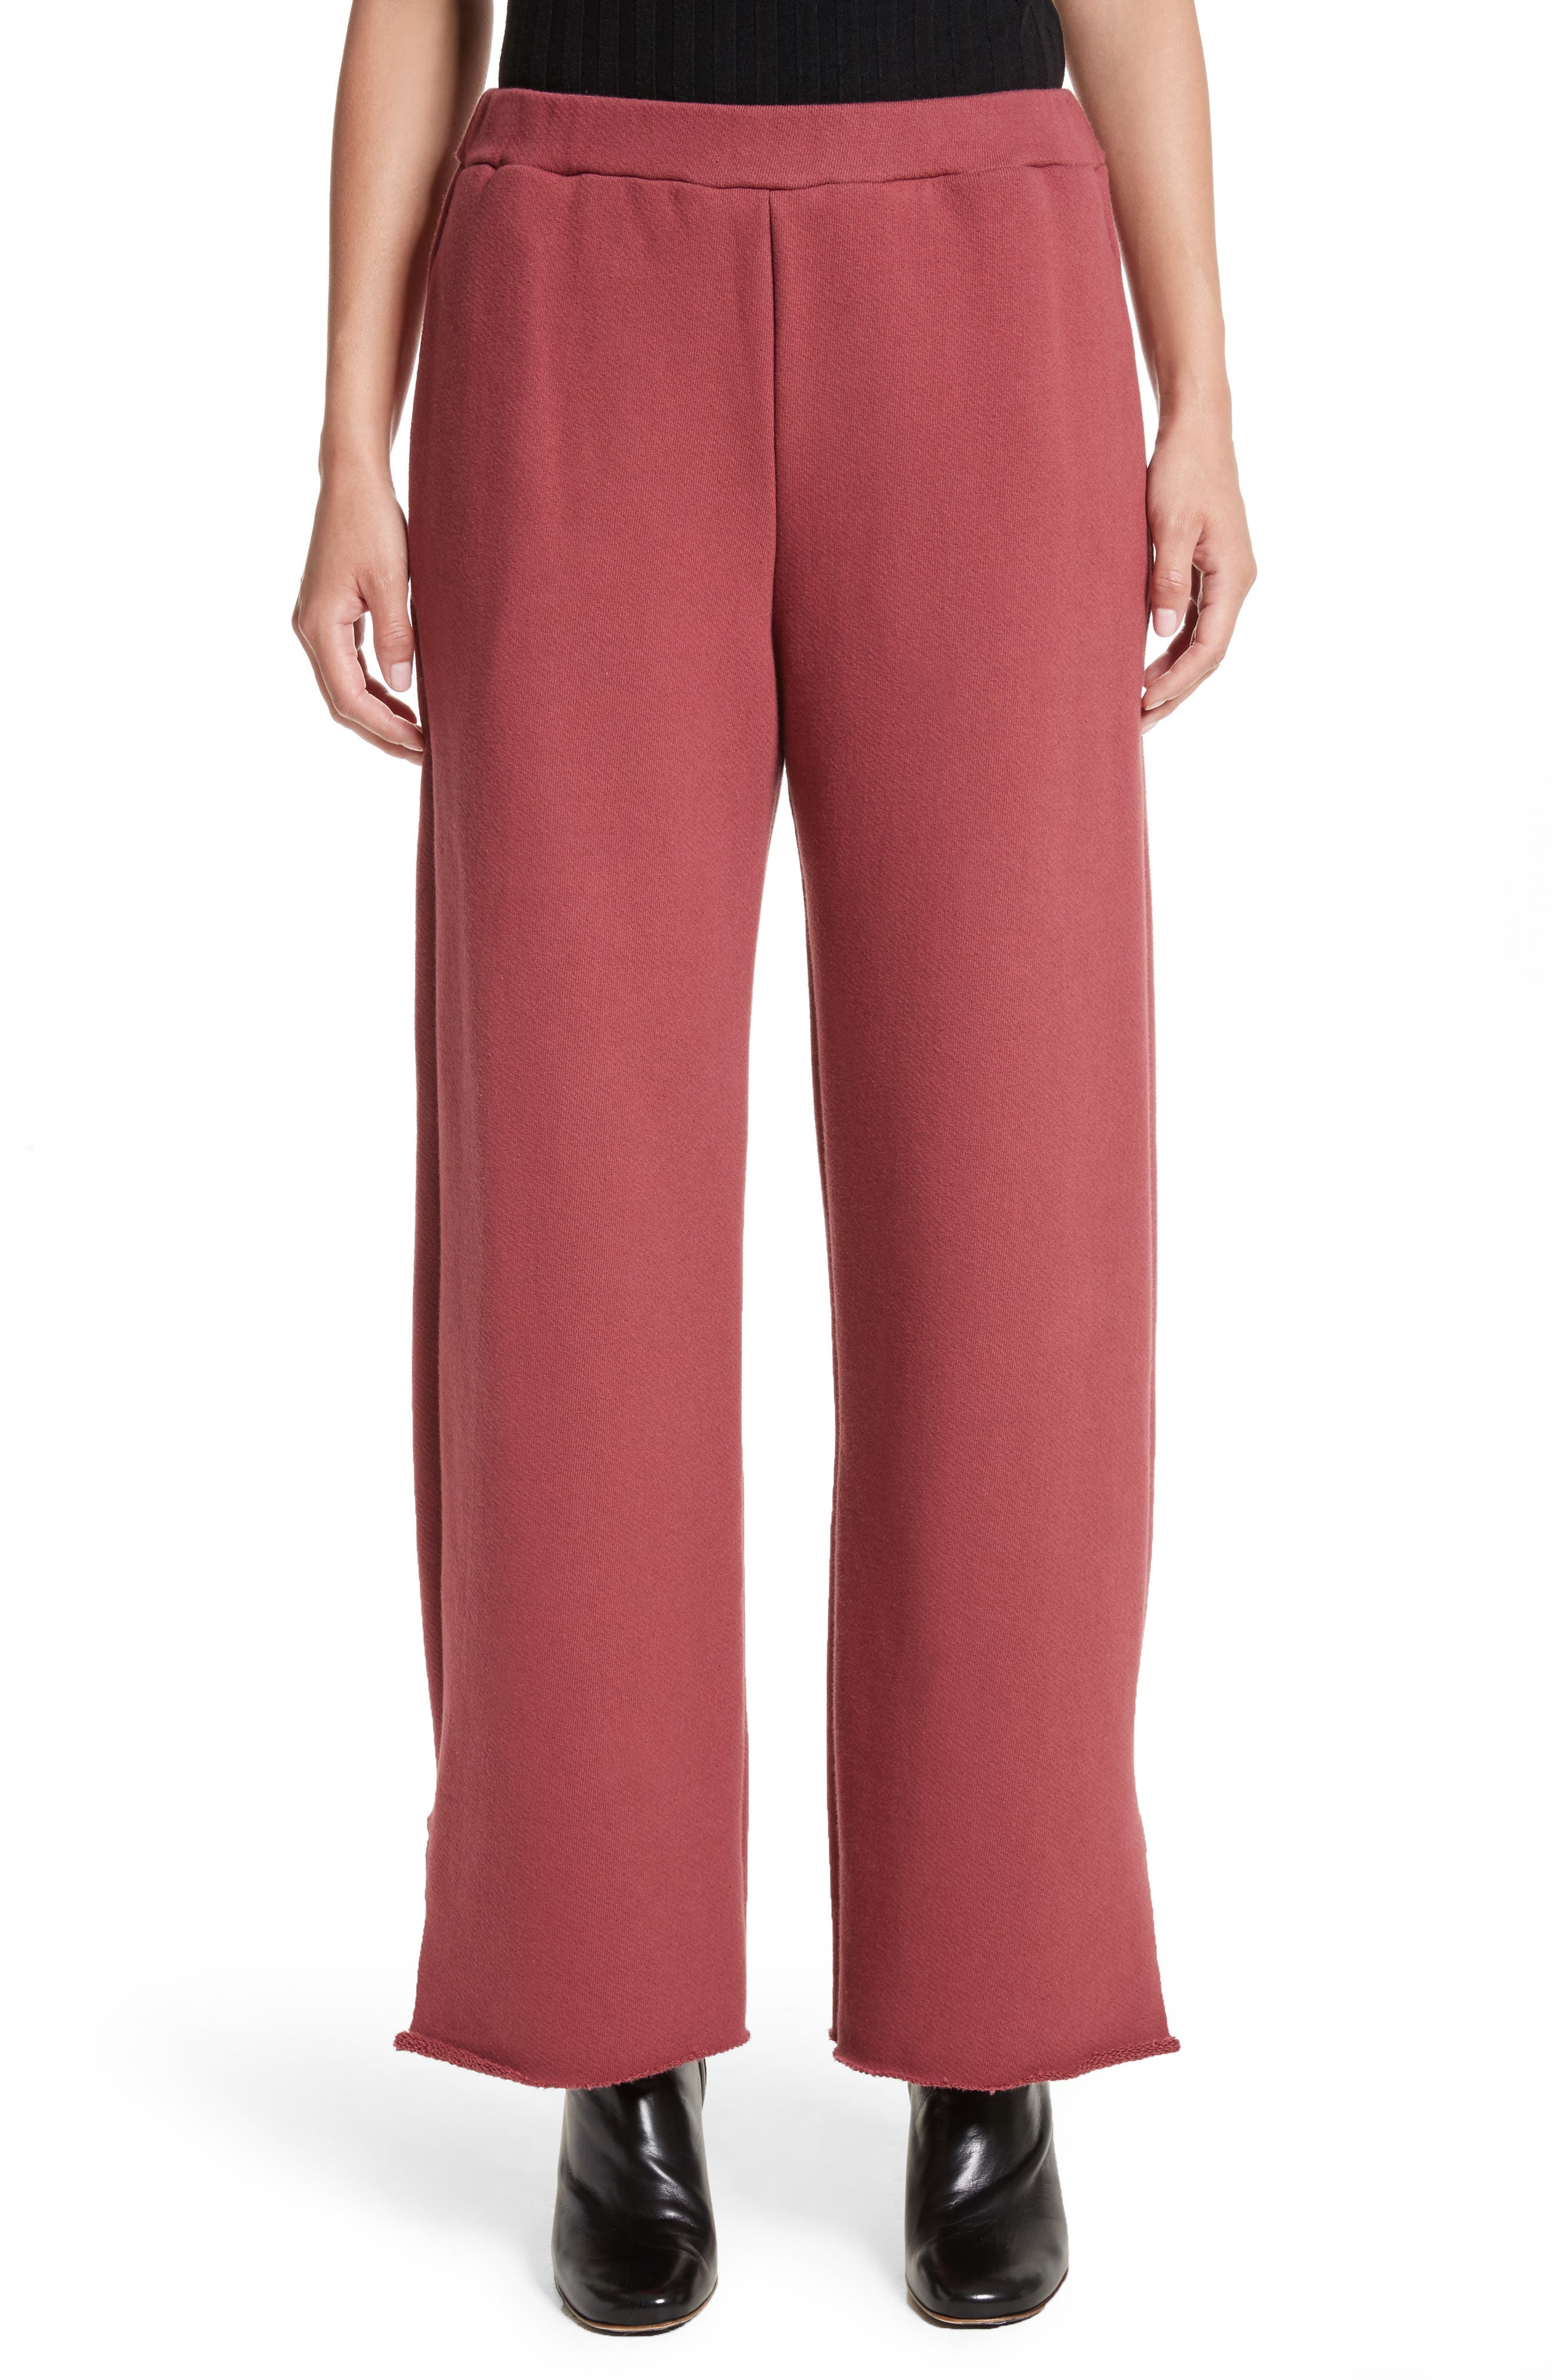 Canal French Terry Sweatpants,                         Main,                         color,